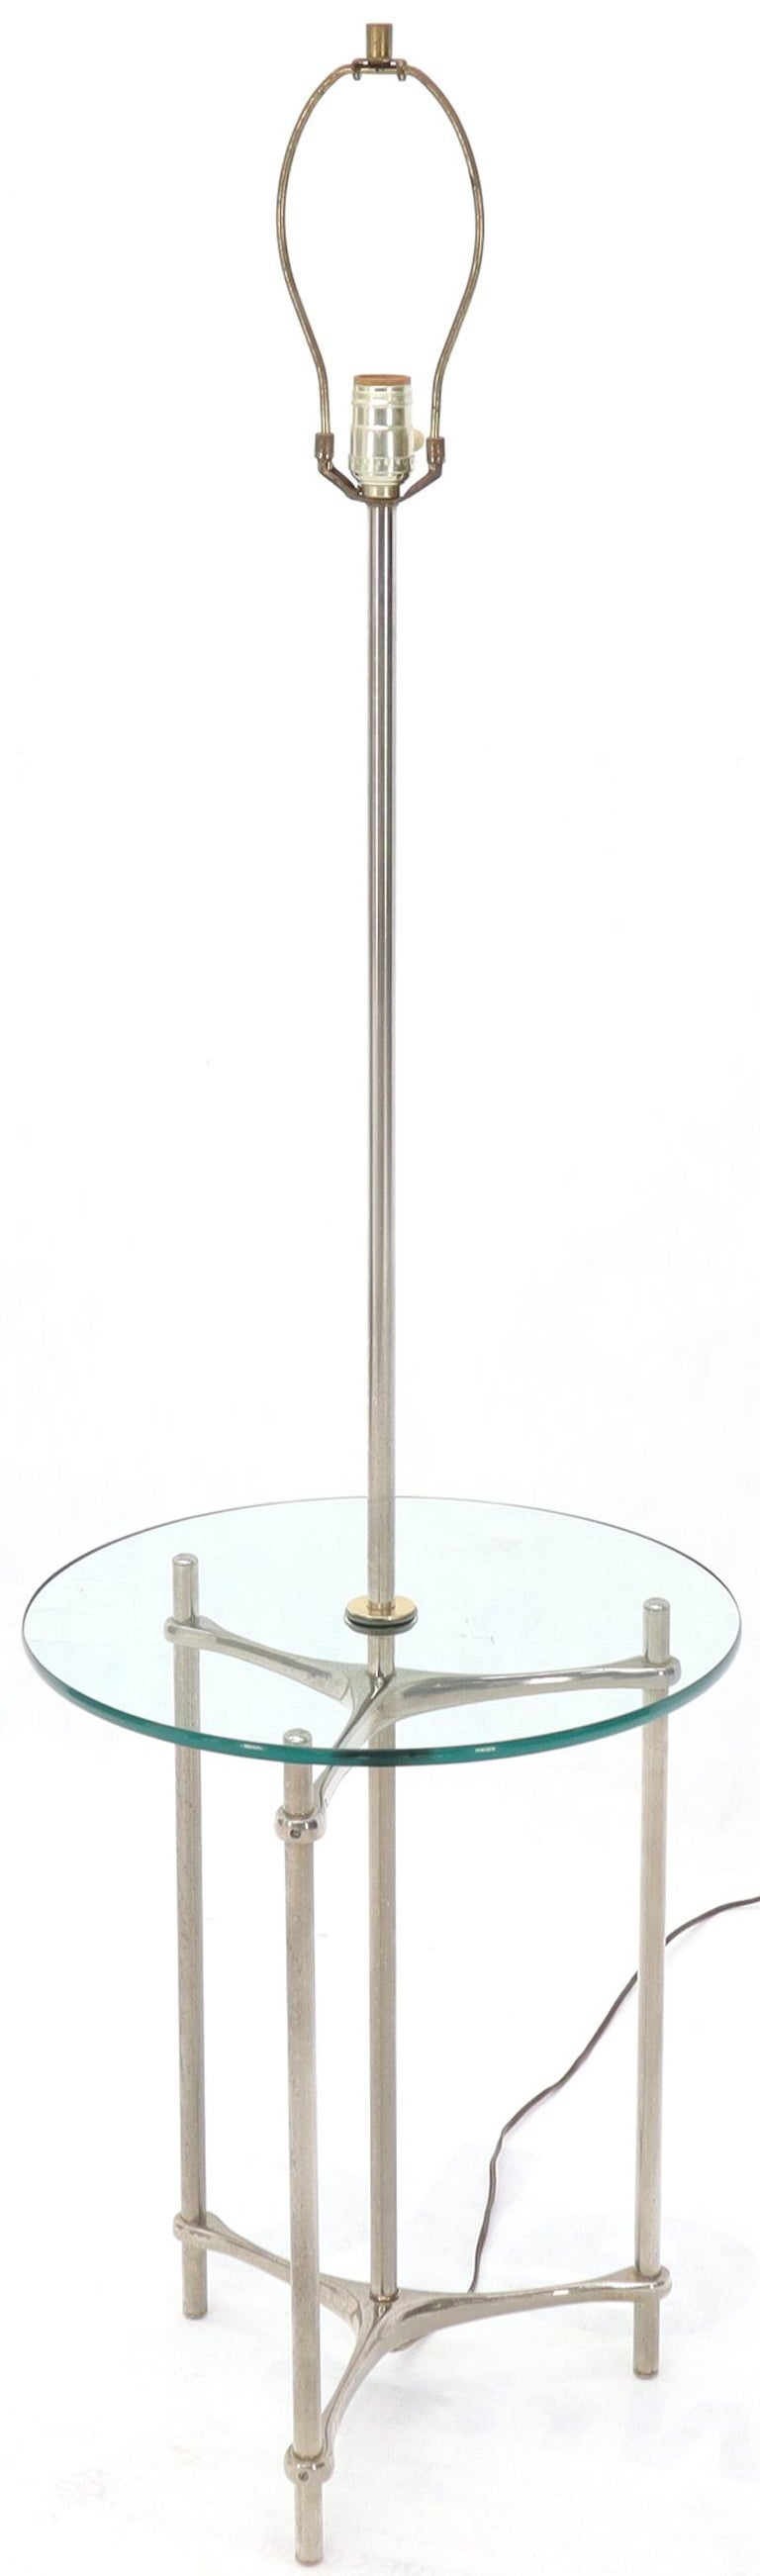 Crome Tripod Base Glass Side Table Floor Lamp For Sale 2